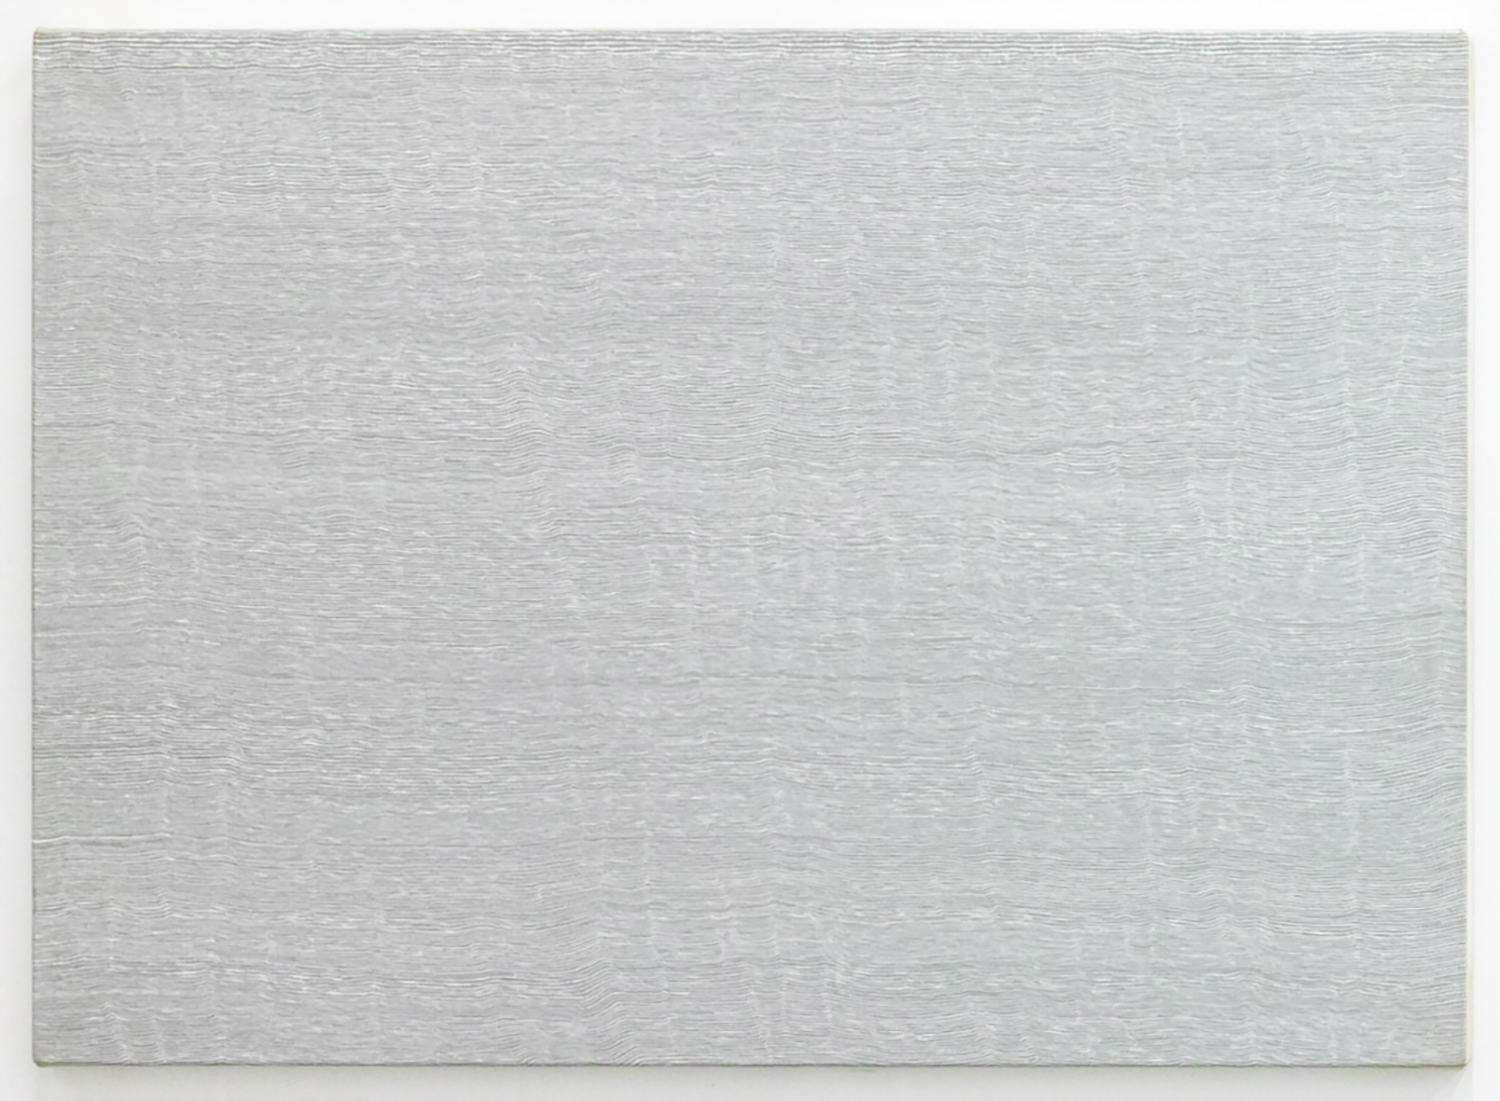 Untitled-Breathe Cool gray<br>Acrylic & gesso on canvas, 56.5 x 78 cm 1996